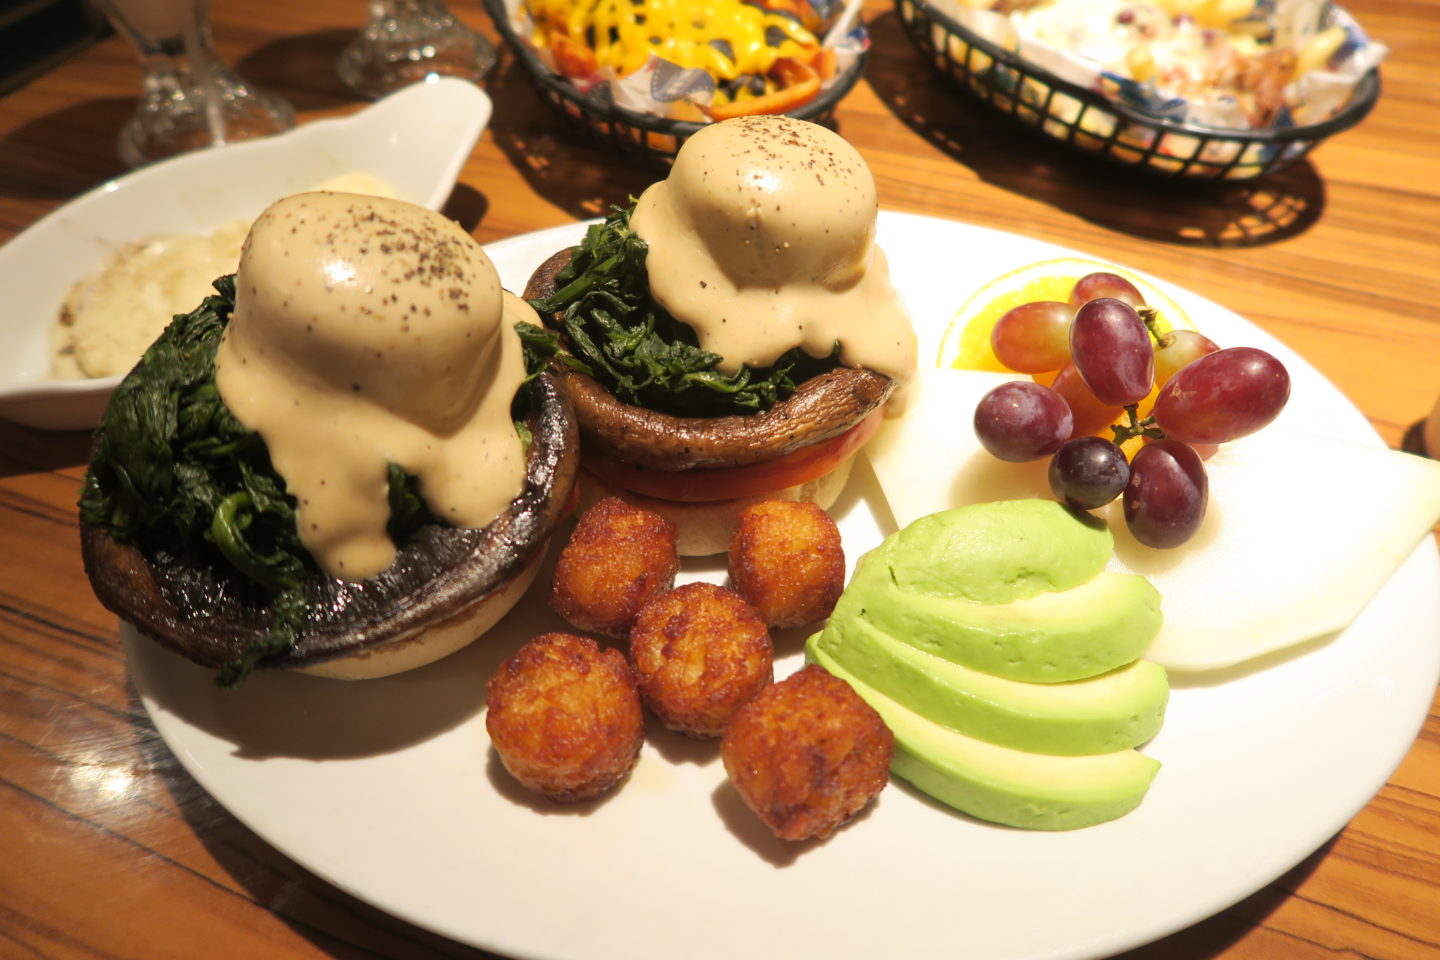 Vegan food at a Vegan friendly restaurant in London-sarahsLifestyleDiary